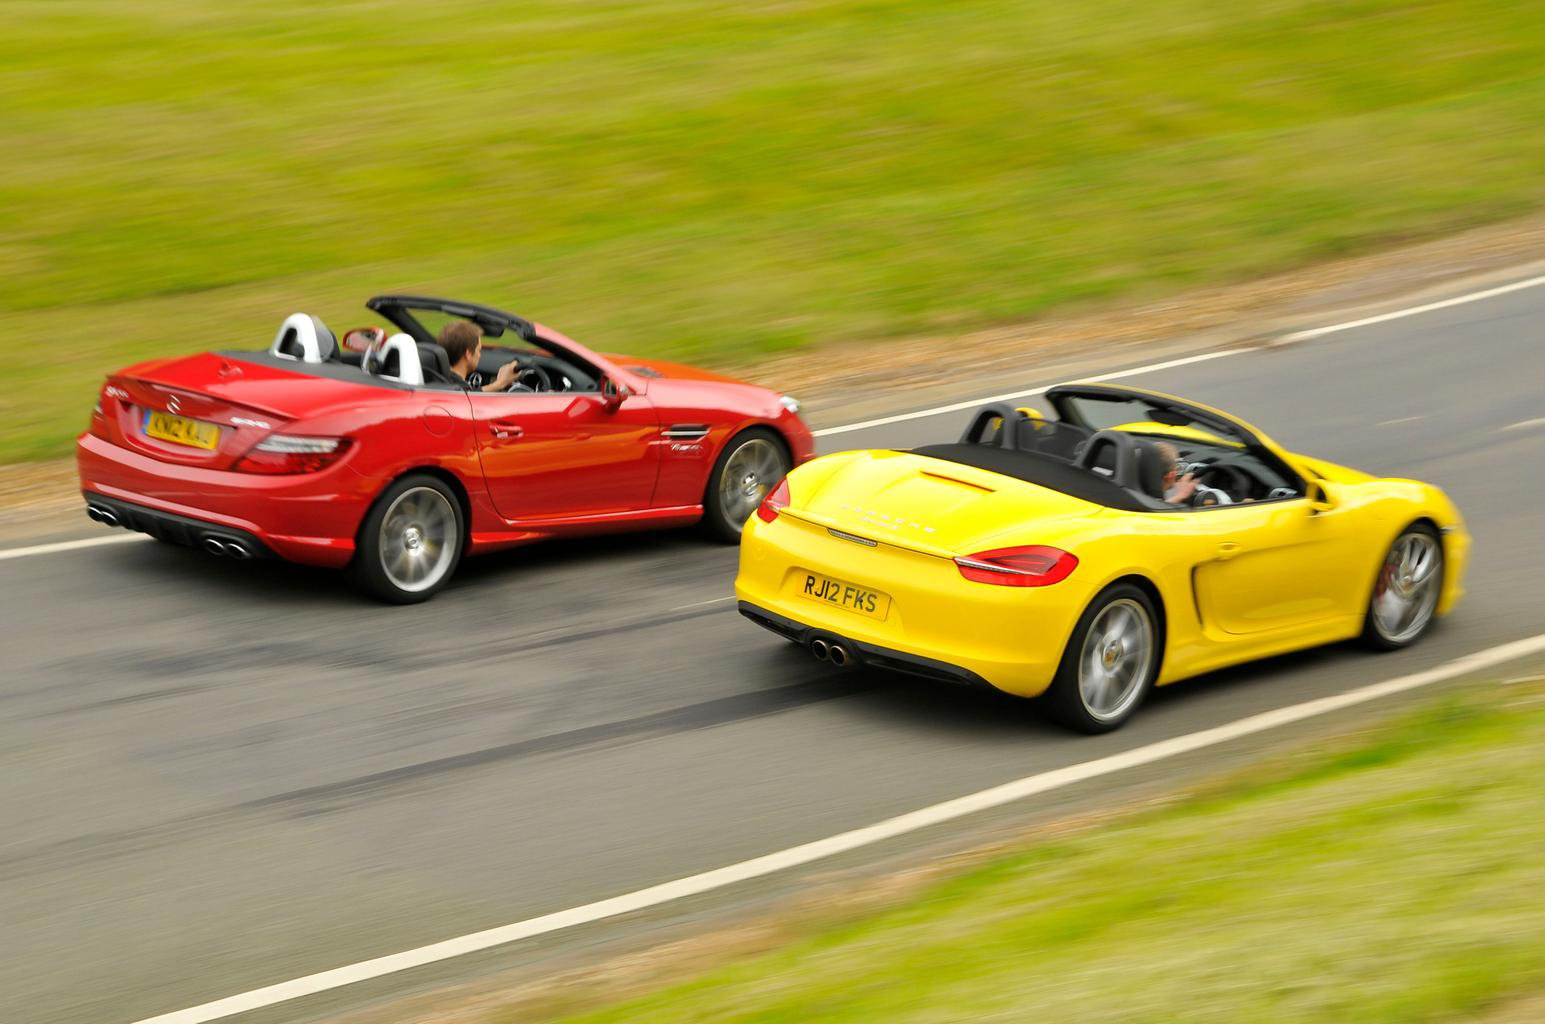 Used sports cars tested: Porsche Boxster vs Mercedes SLK